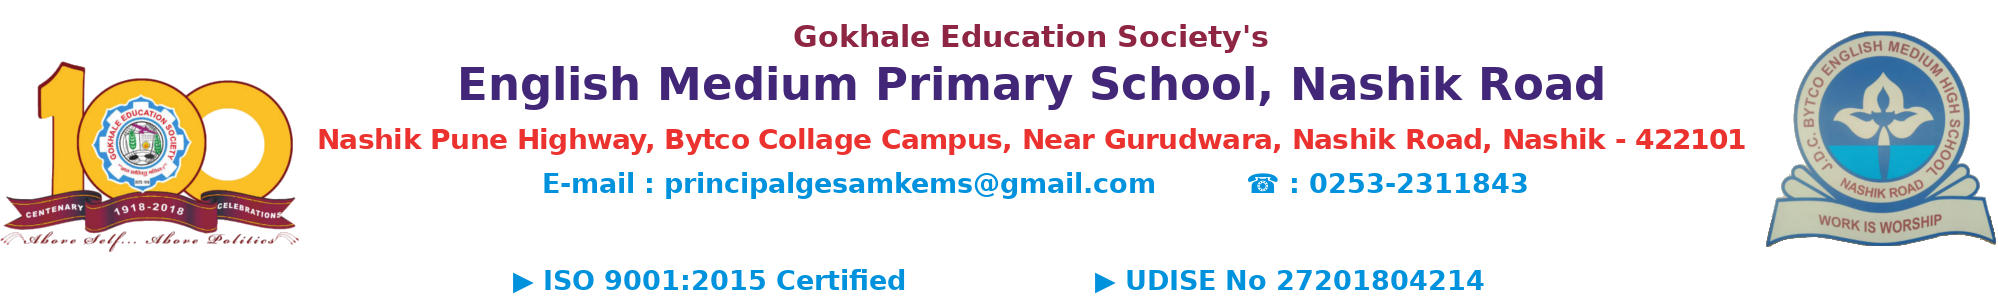 Gokhale Education Society's English Medium Primary School, Nashik Road